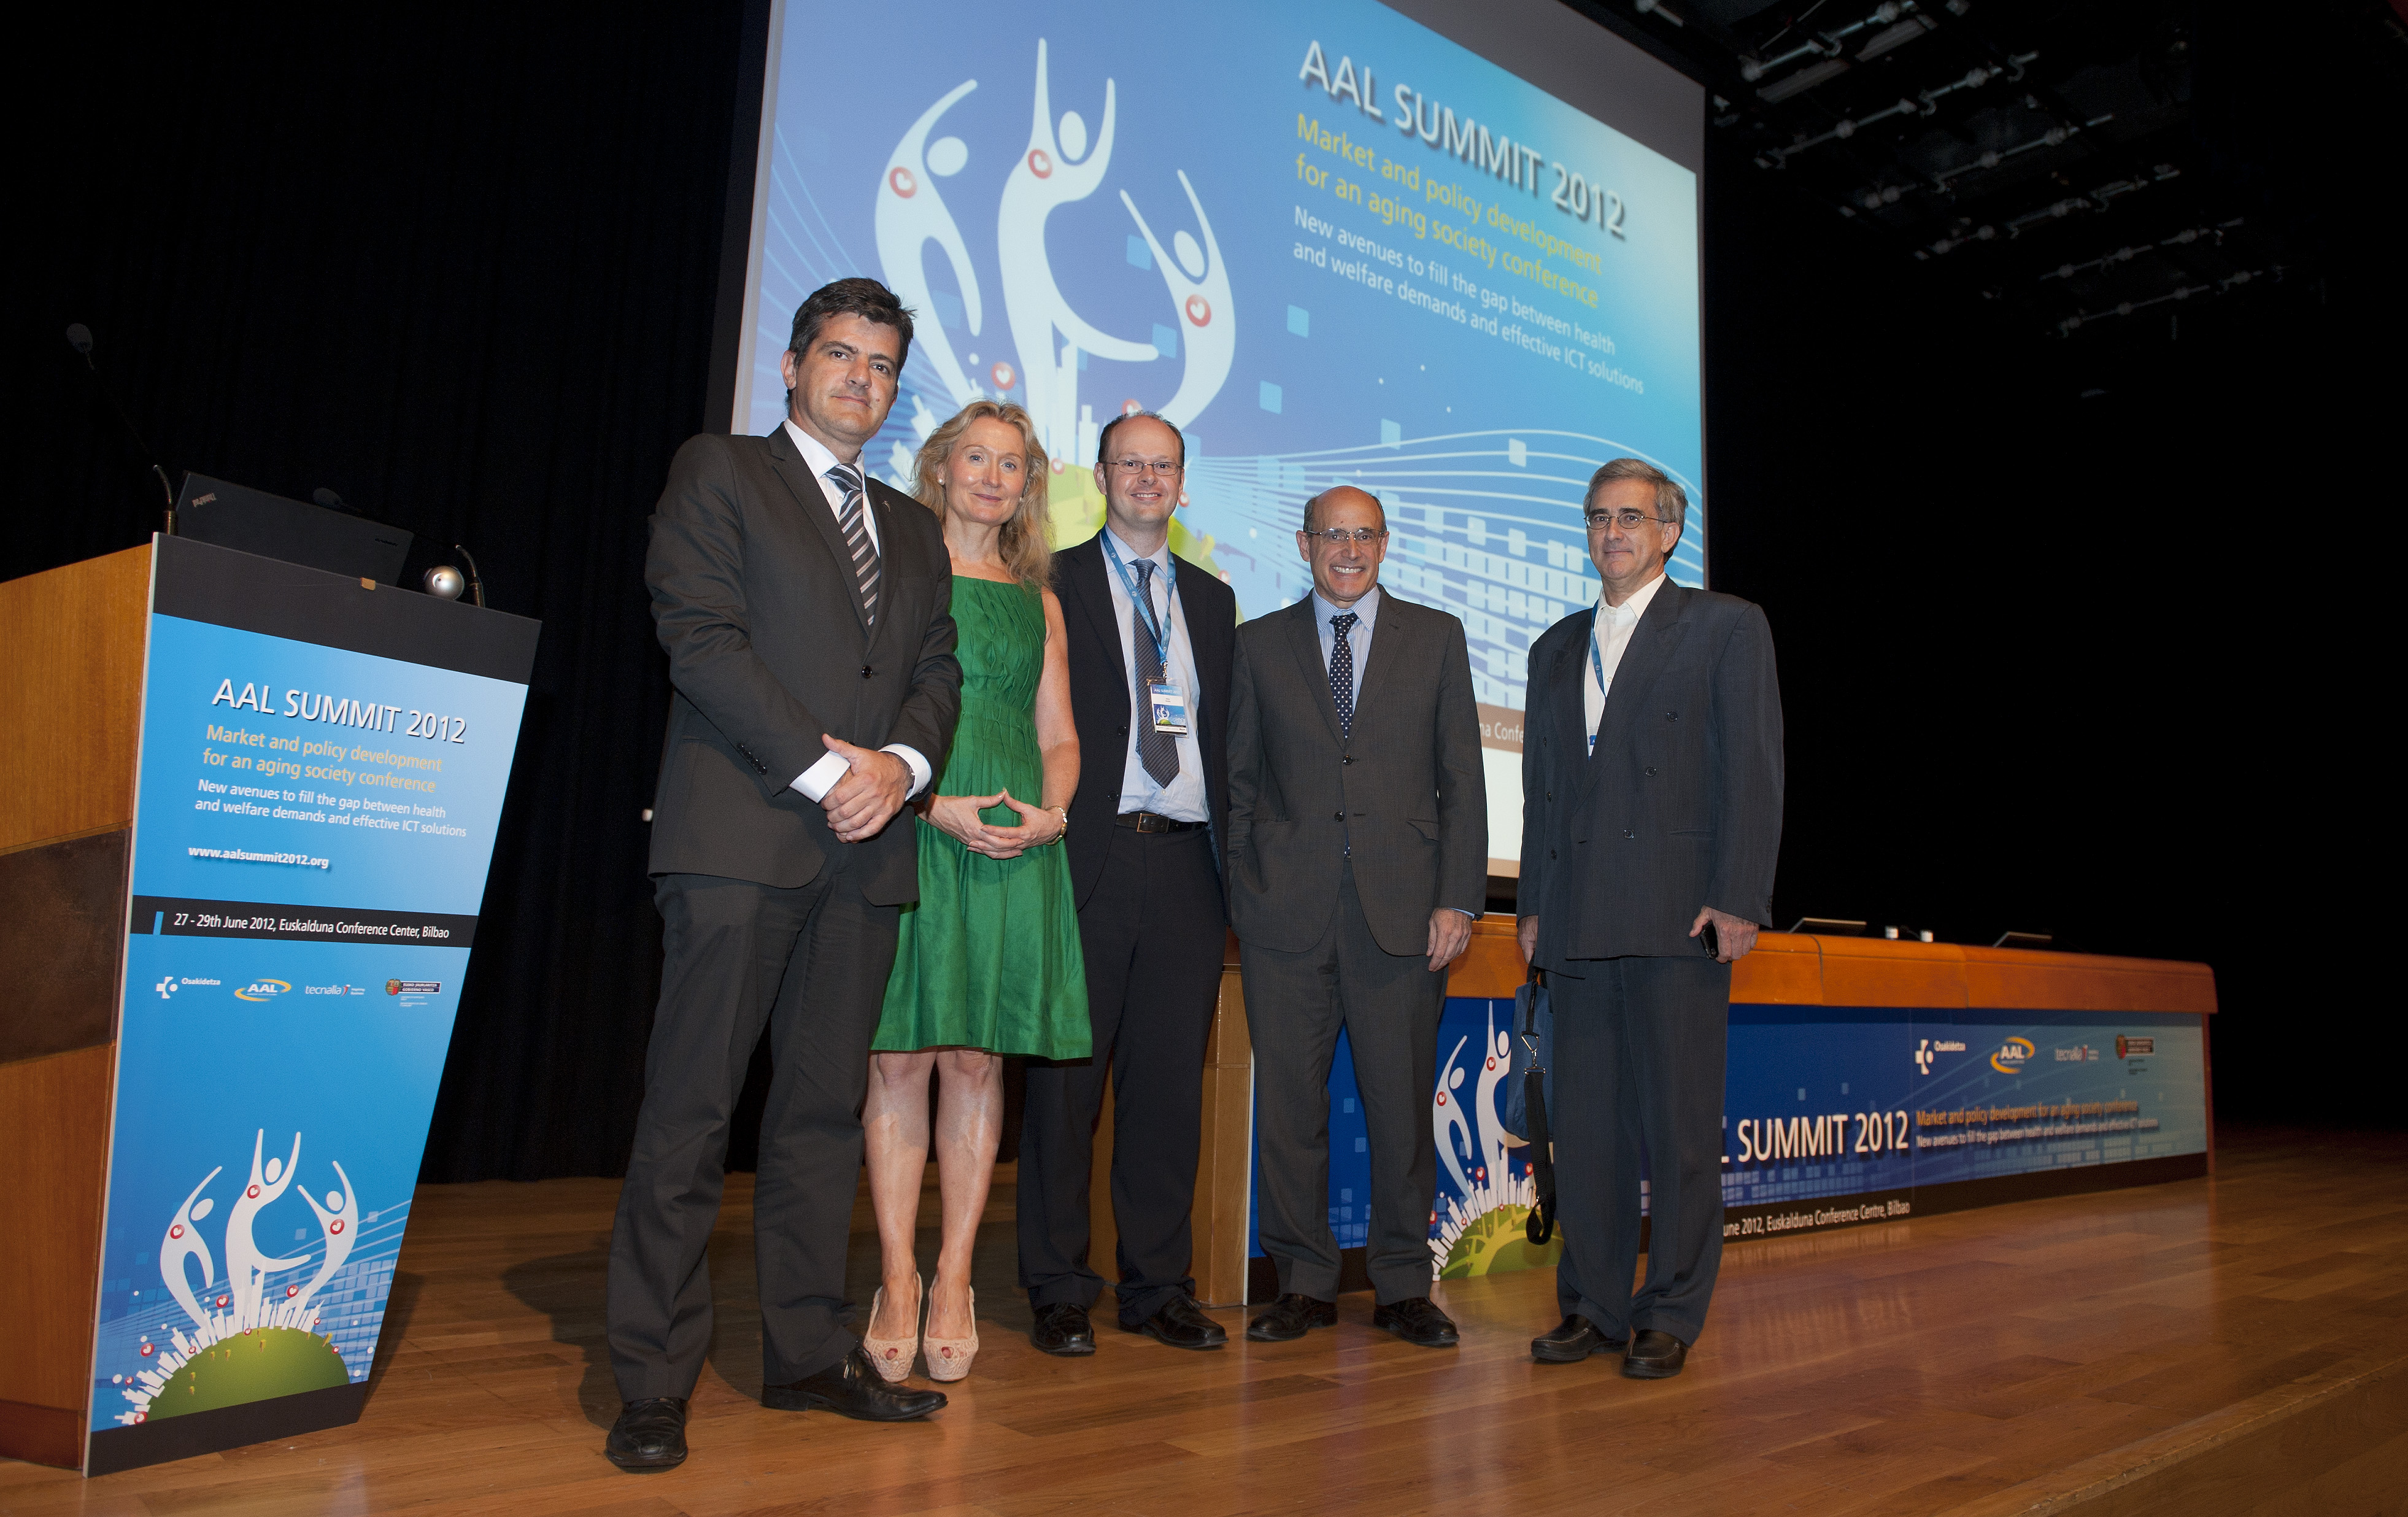 2012_06_29_congreso_aal_summit_11.jpg